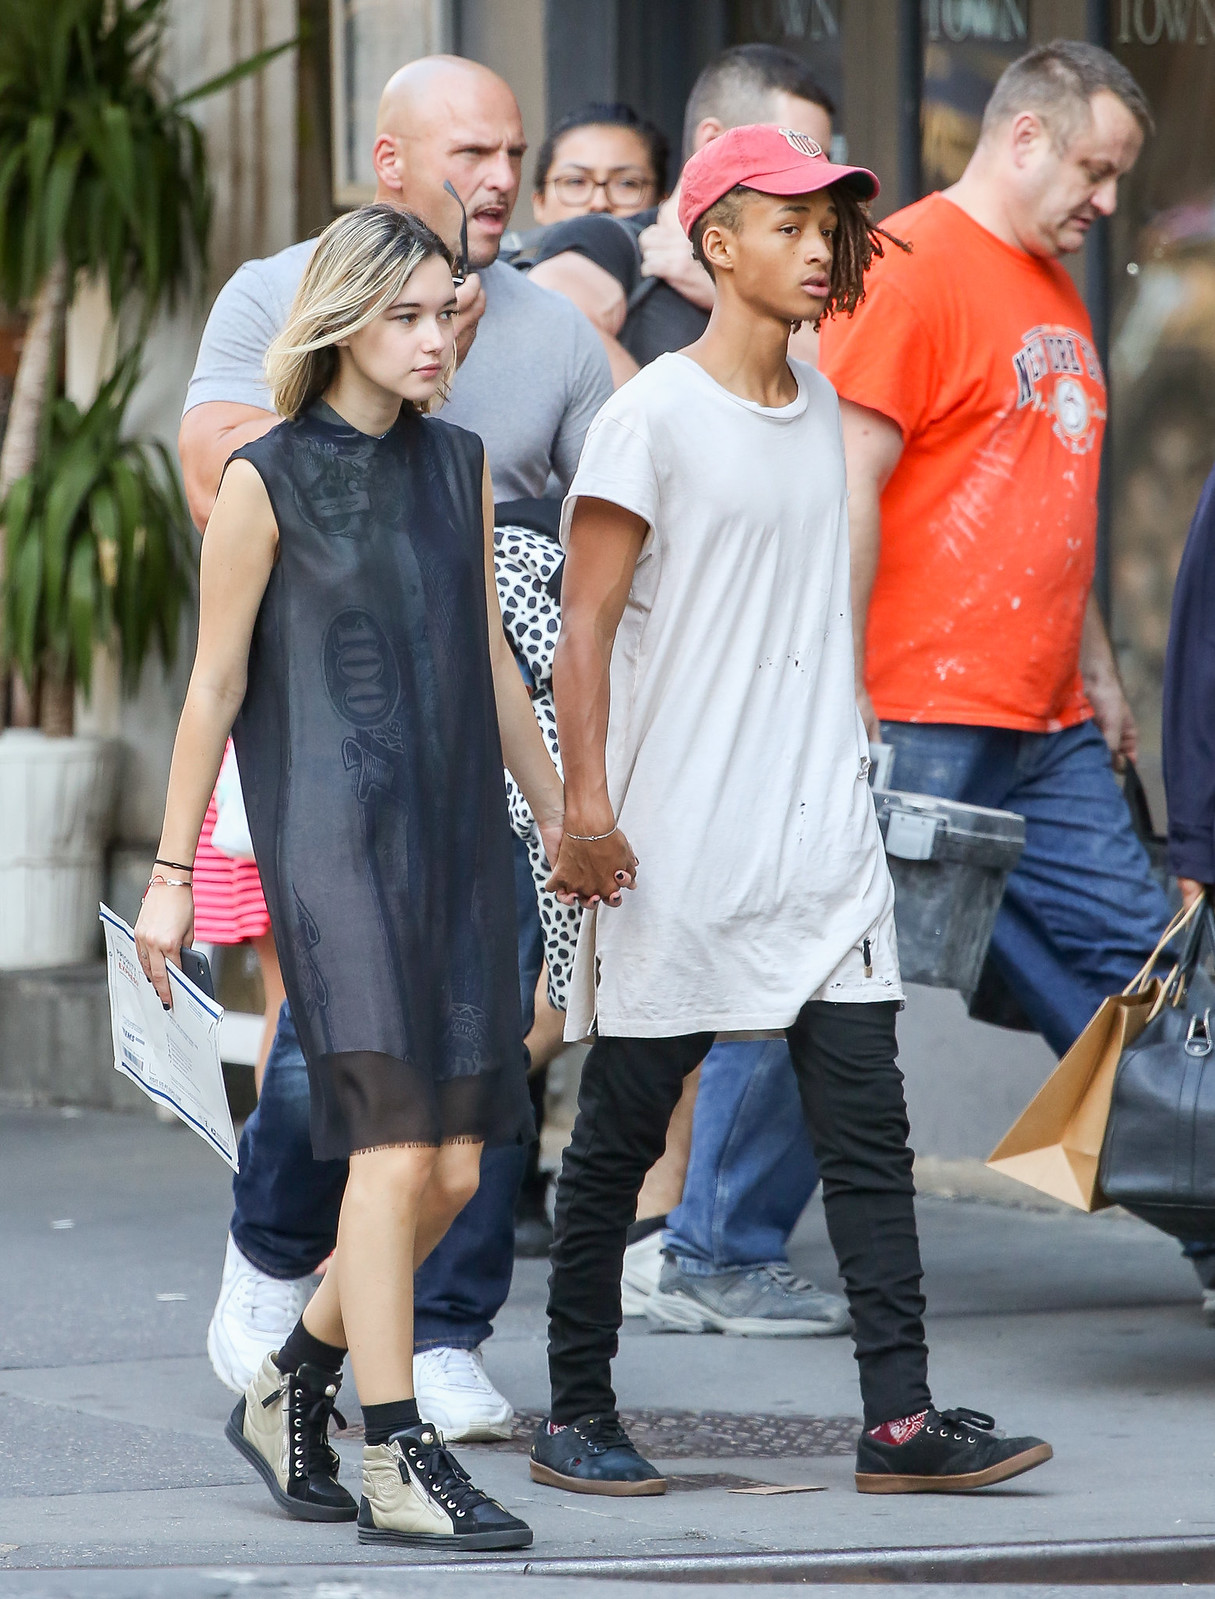 Jaden Smith and girlfriend spotted out in NYC 9/15/15